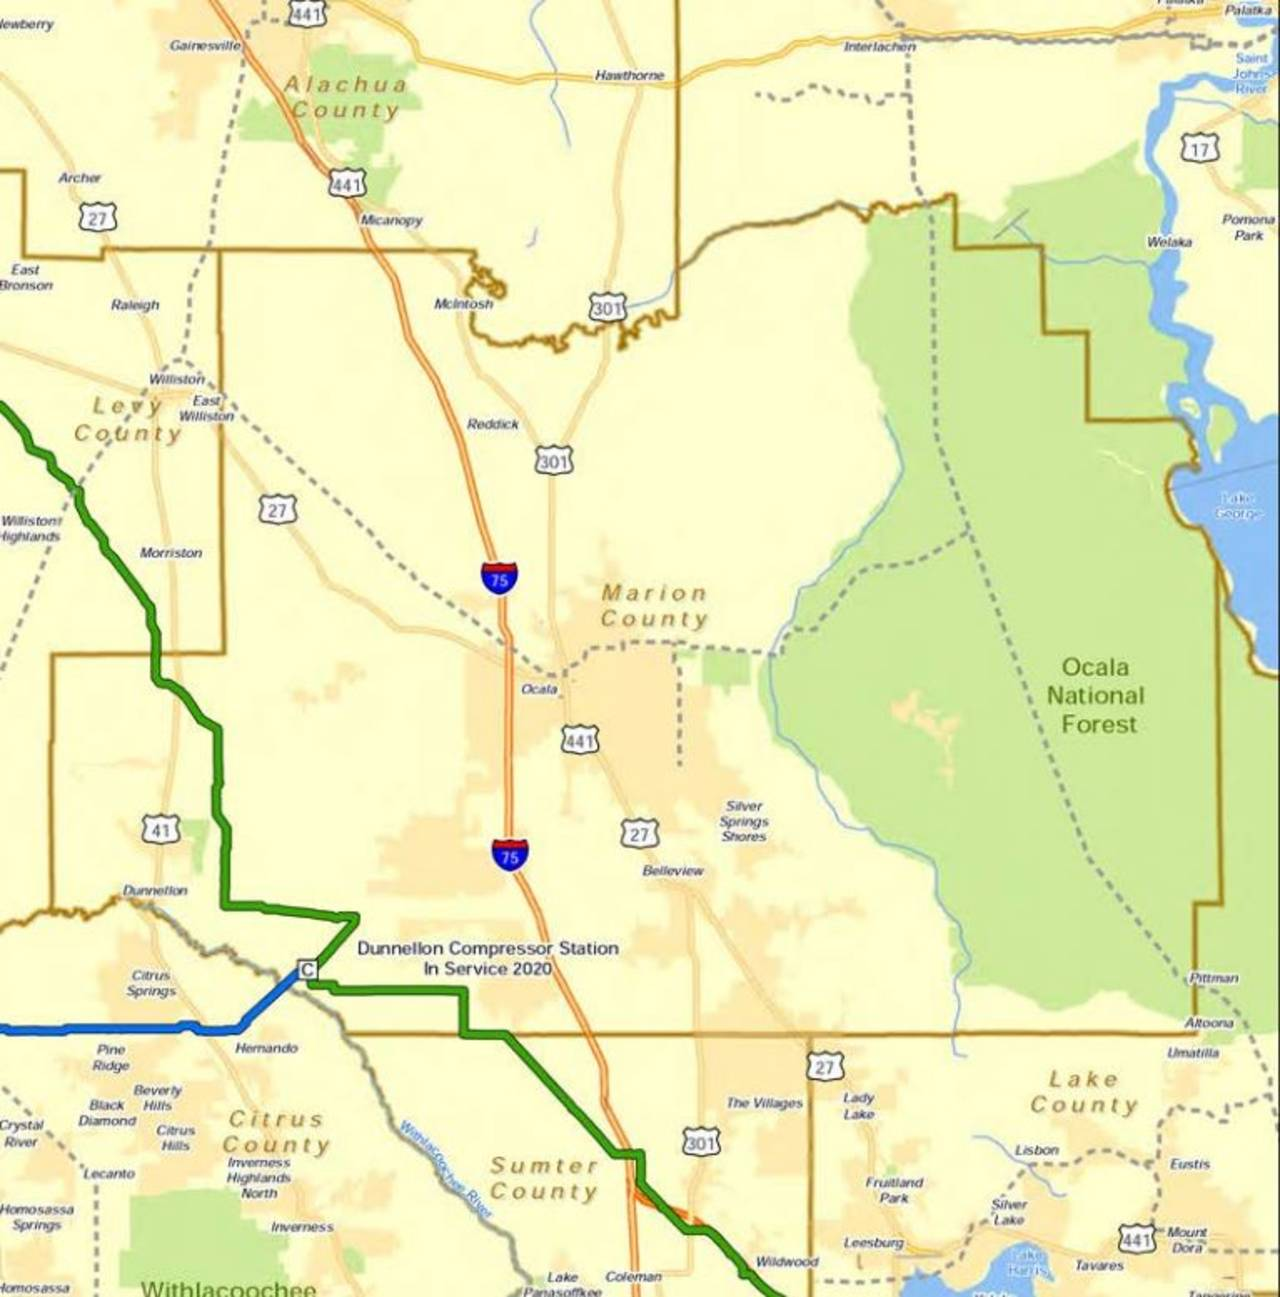 Marion County proposed pipeline